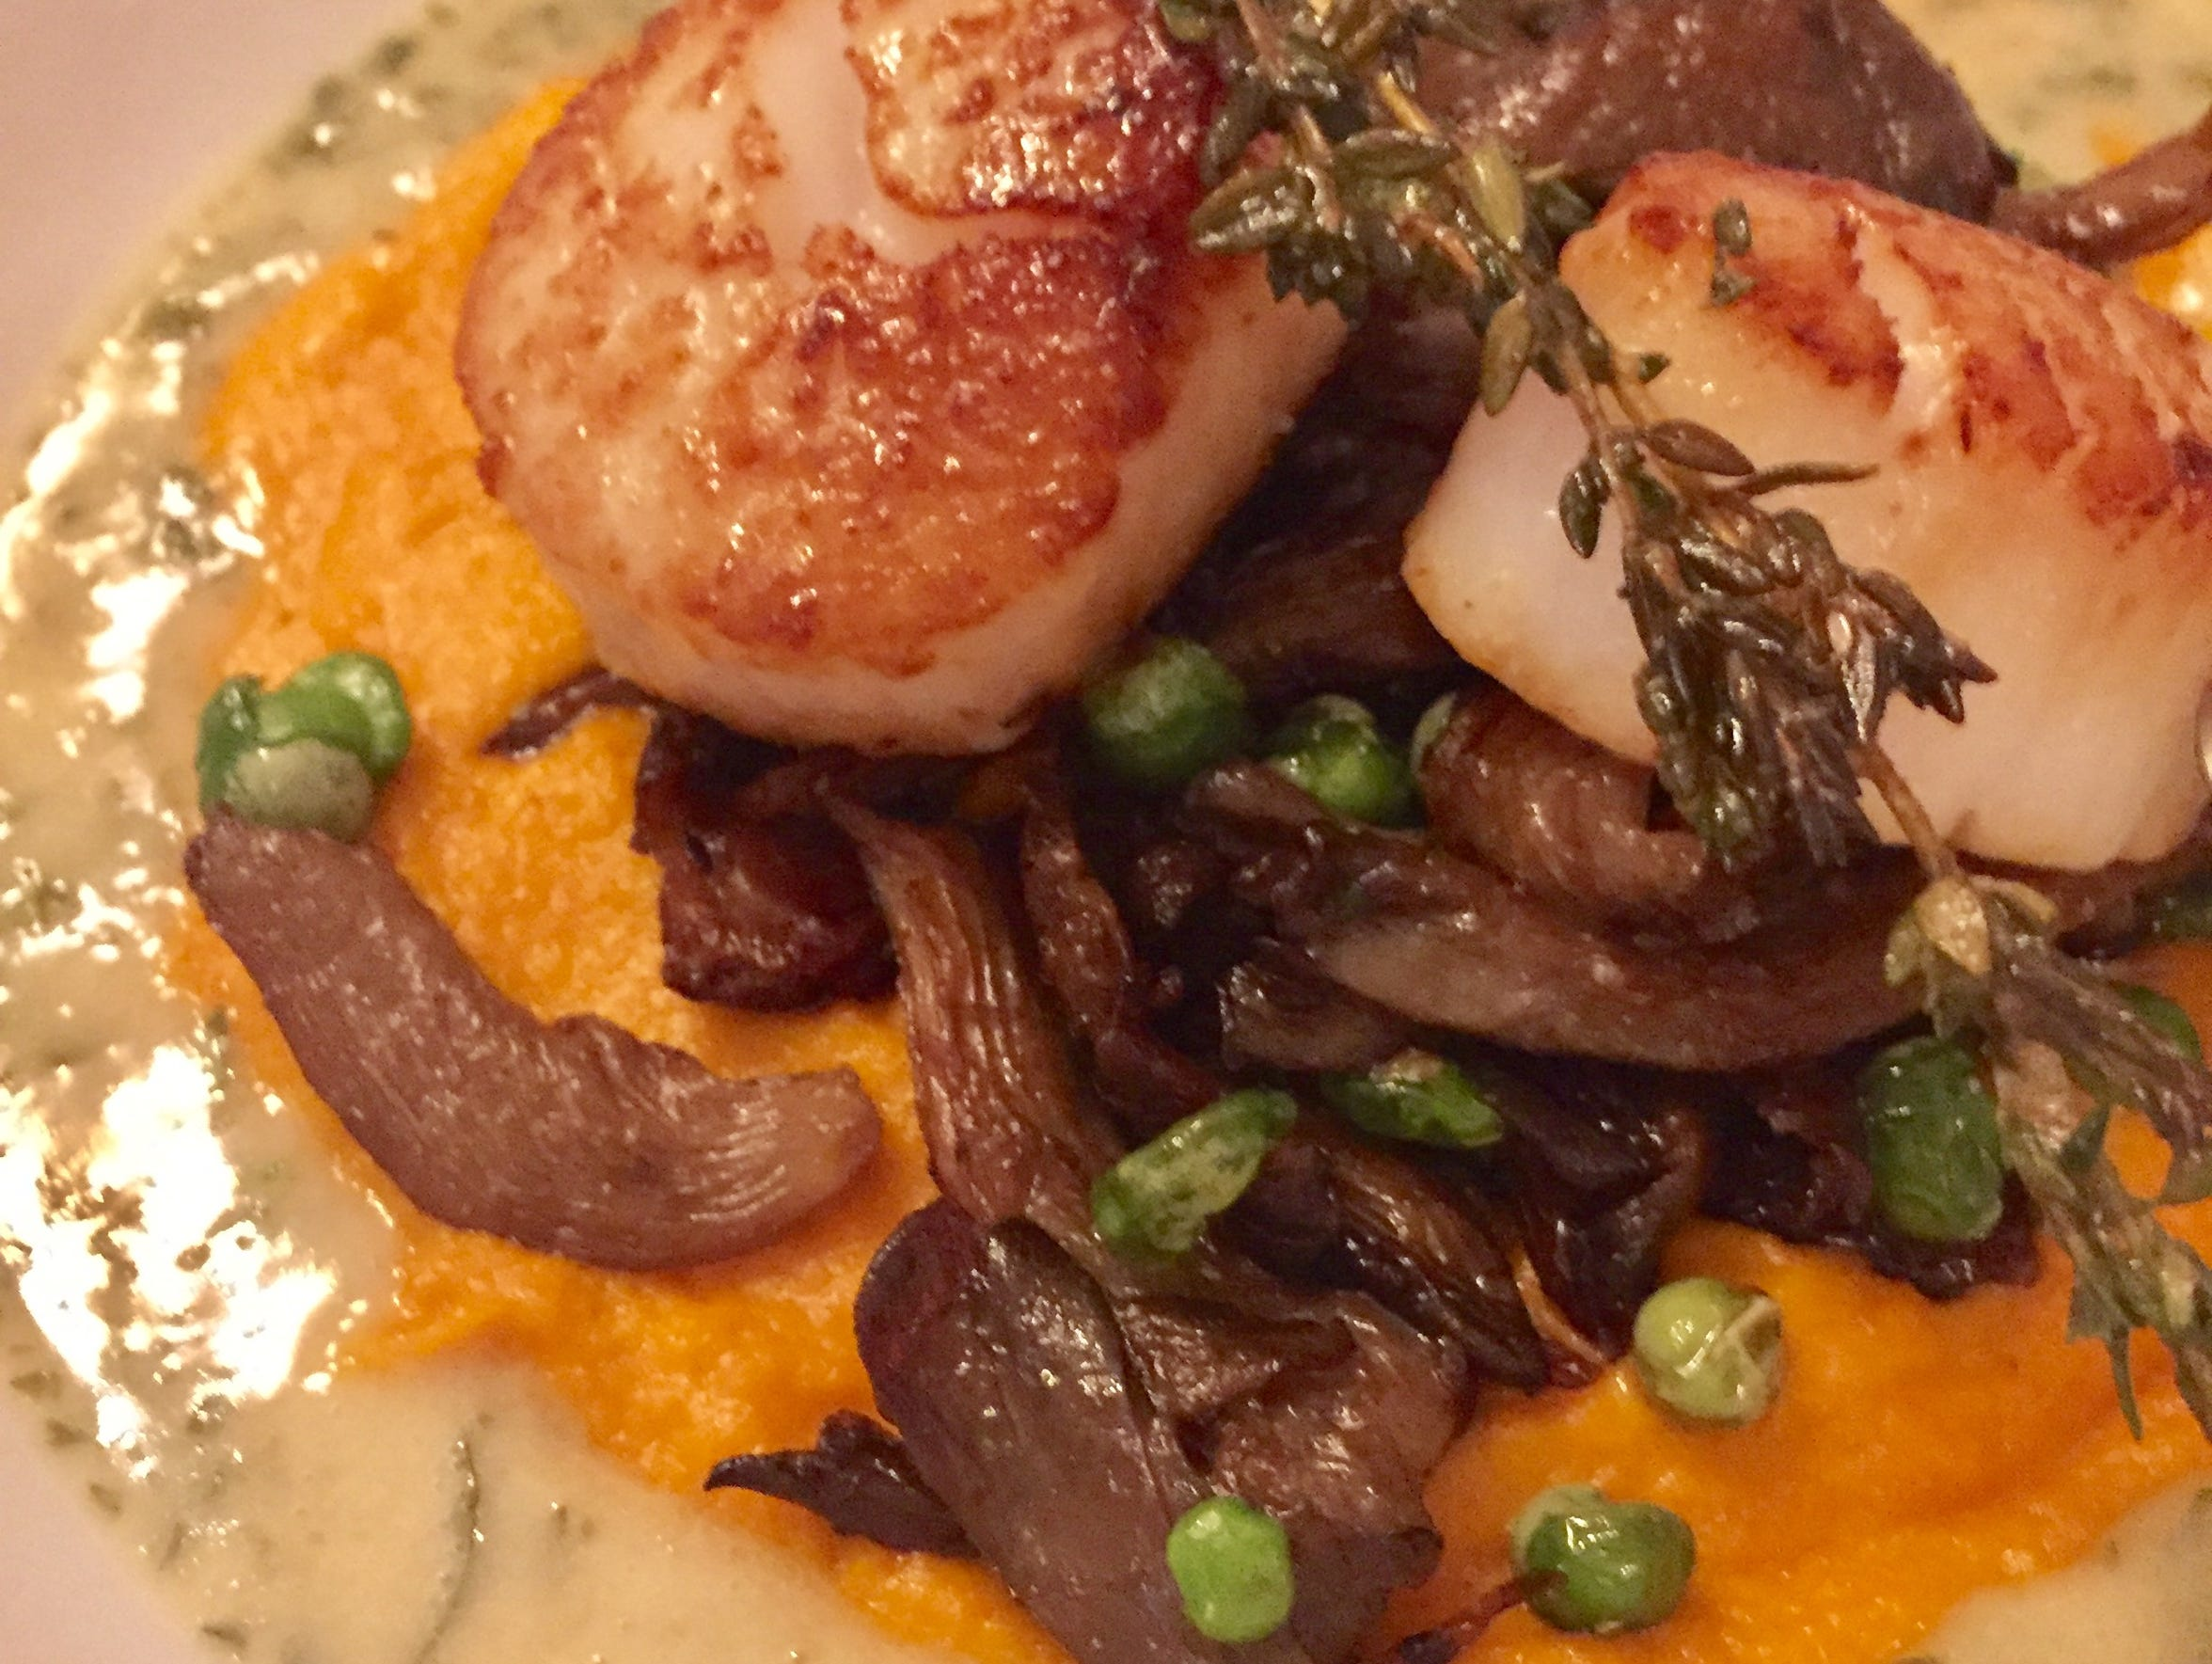 Scallops with carrot puree, peas, oyster mushrooms